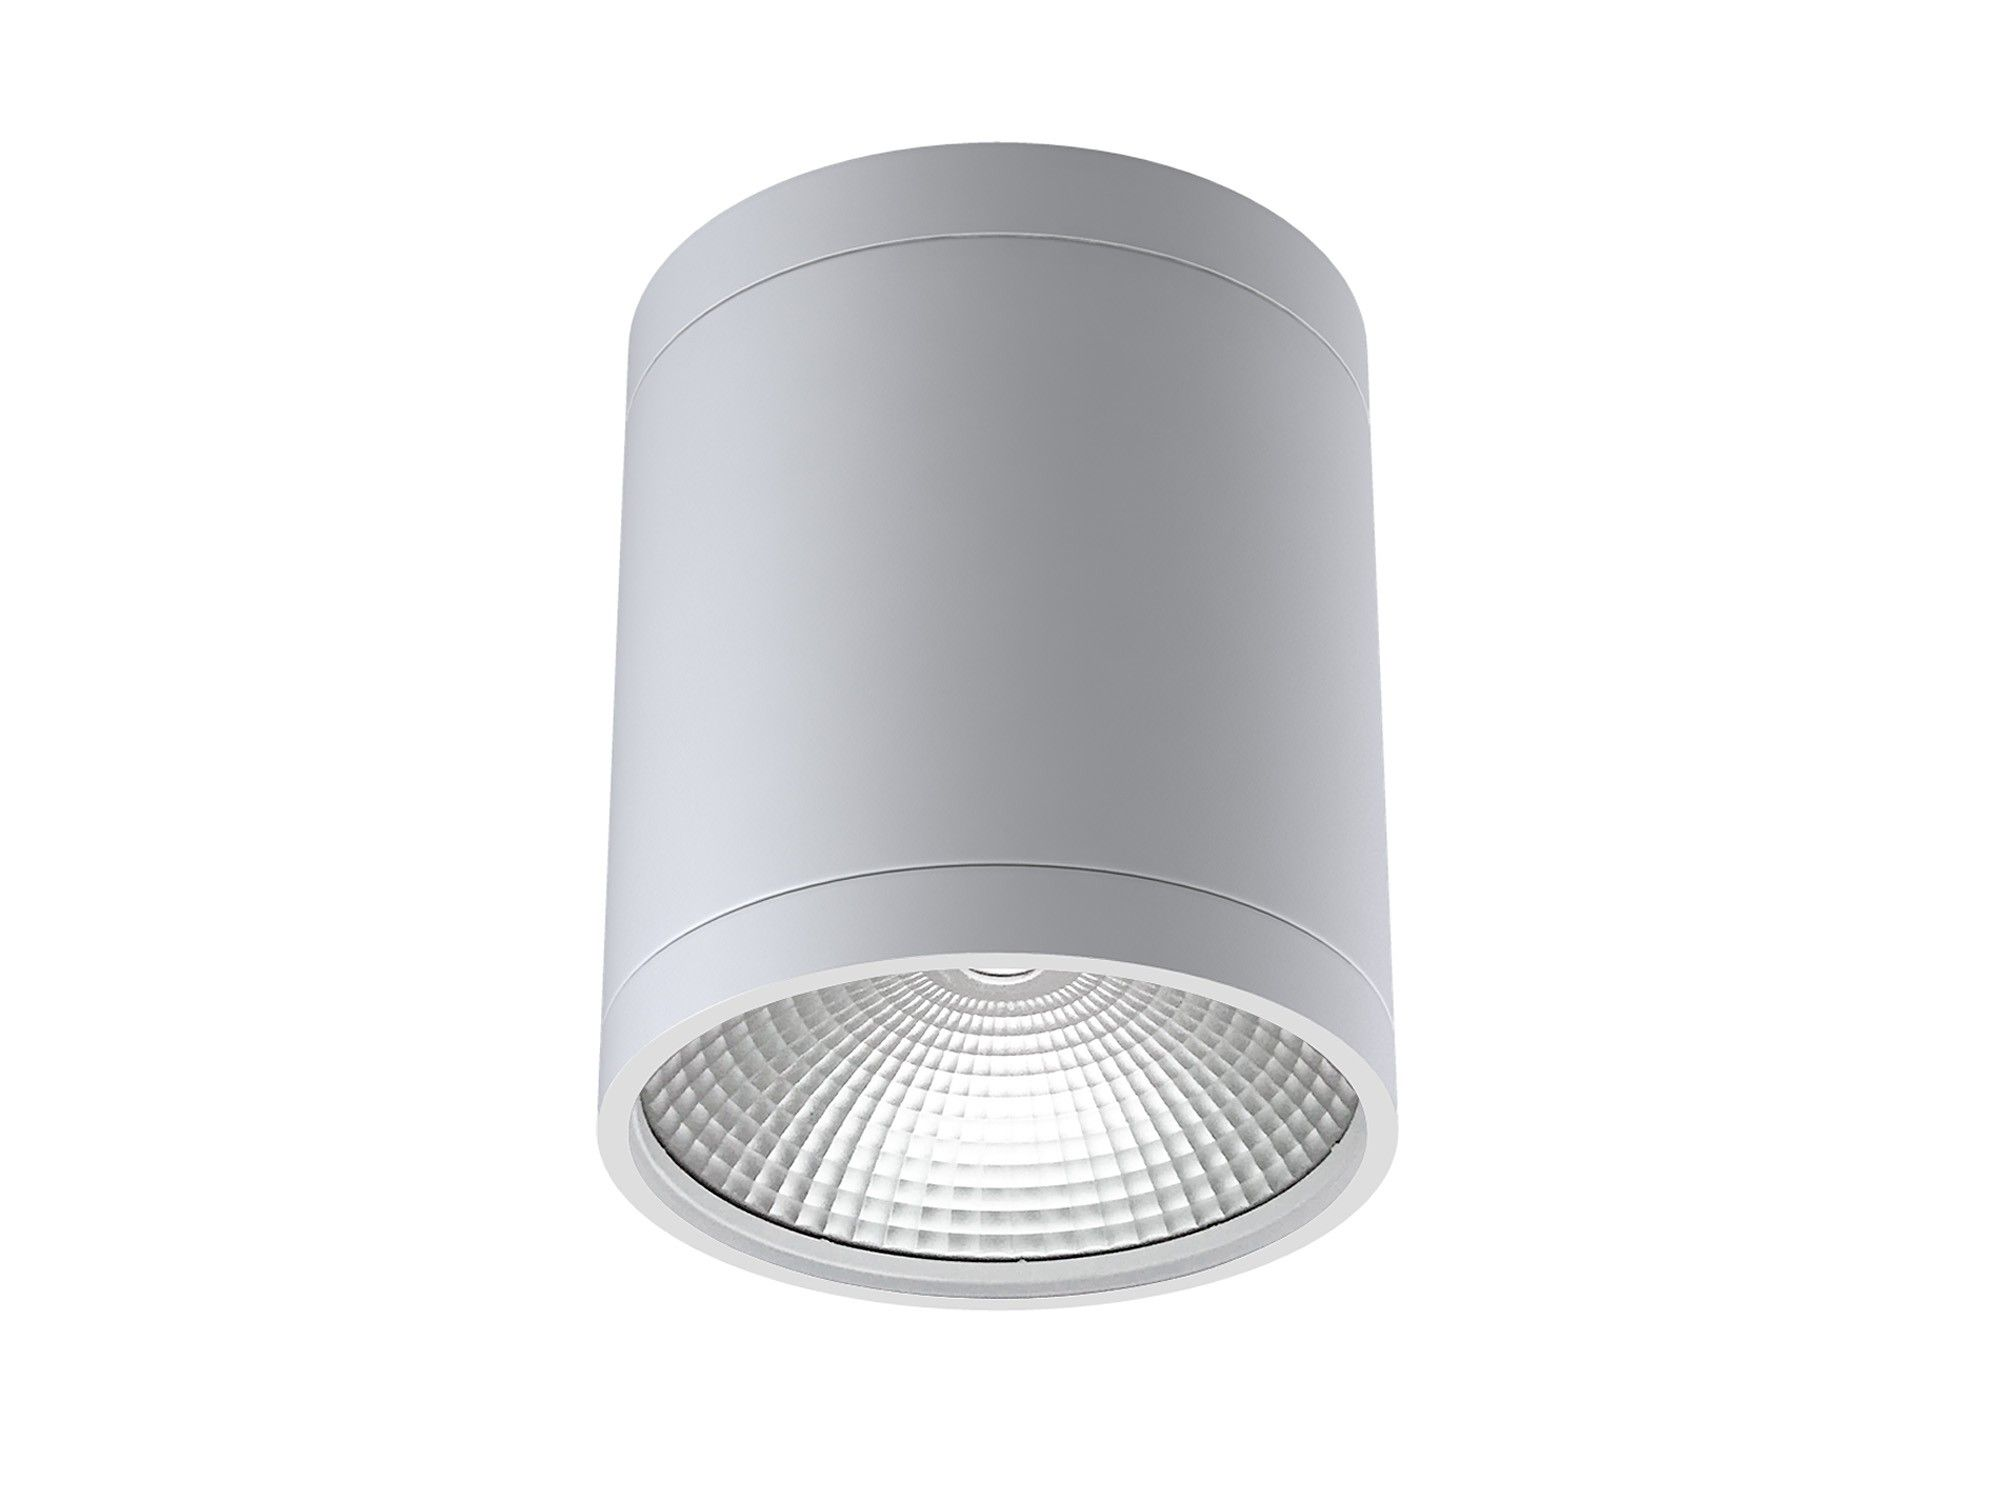 Alcon Lighting 11235 Dir Pavo Architectural Led 4 Inch Round Cylinder Surface Ceiling Mount Direct Down Light Fixture